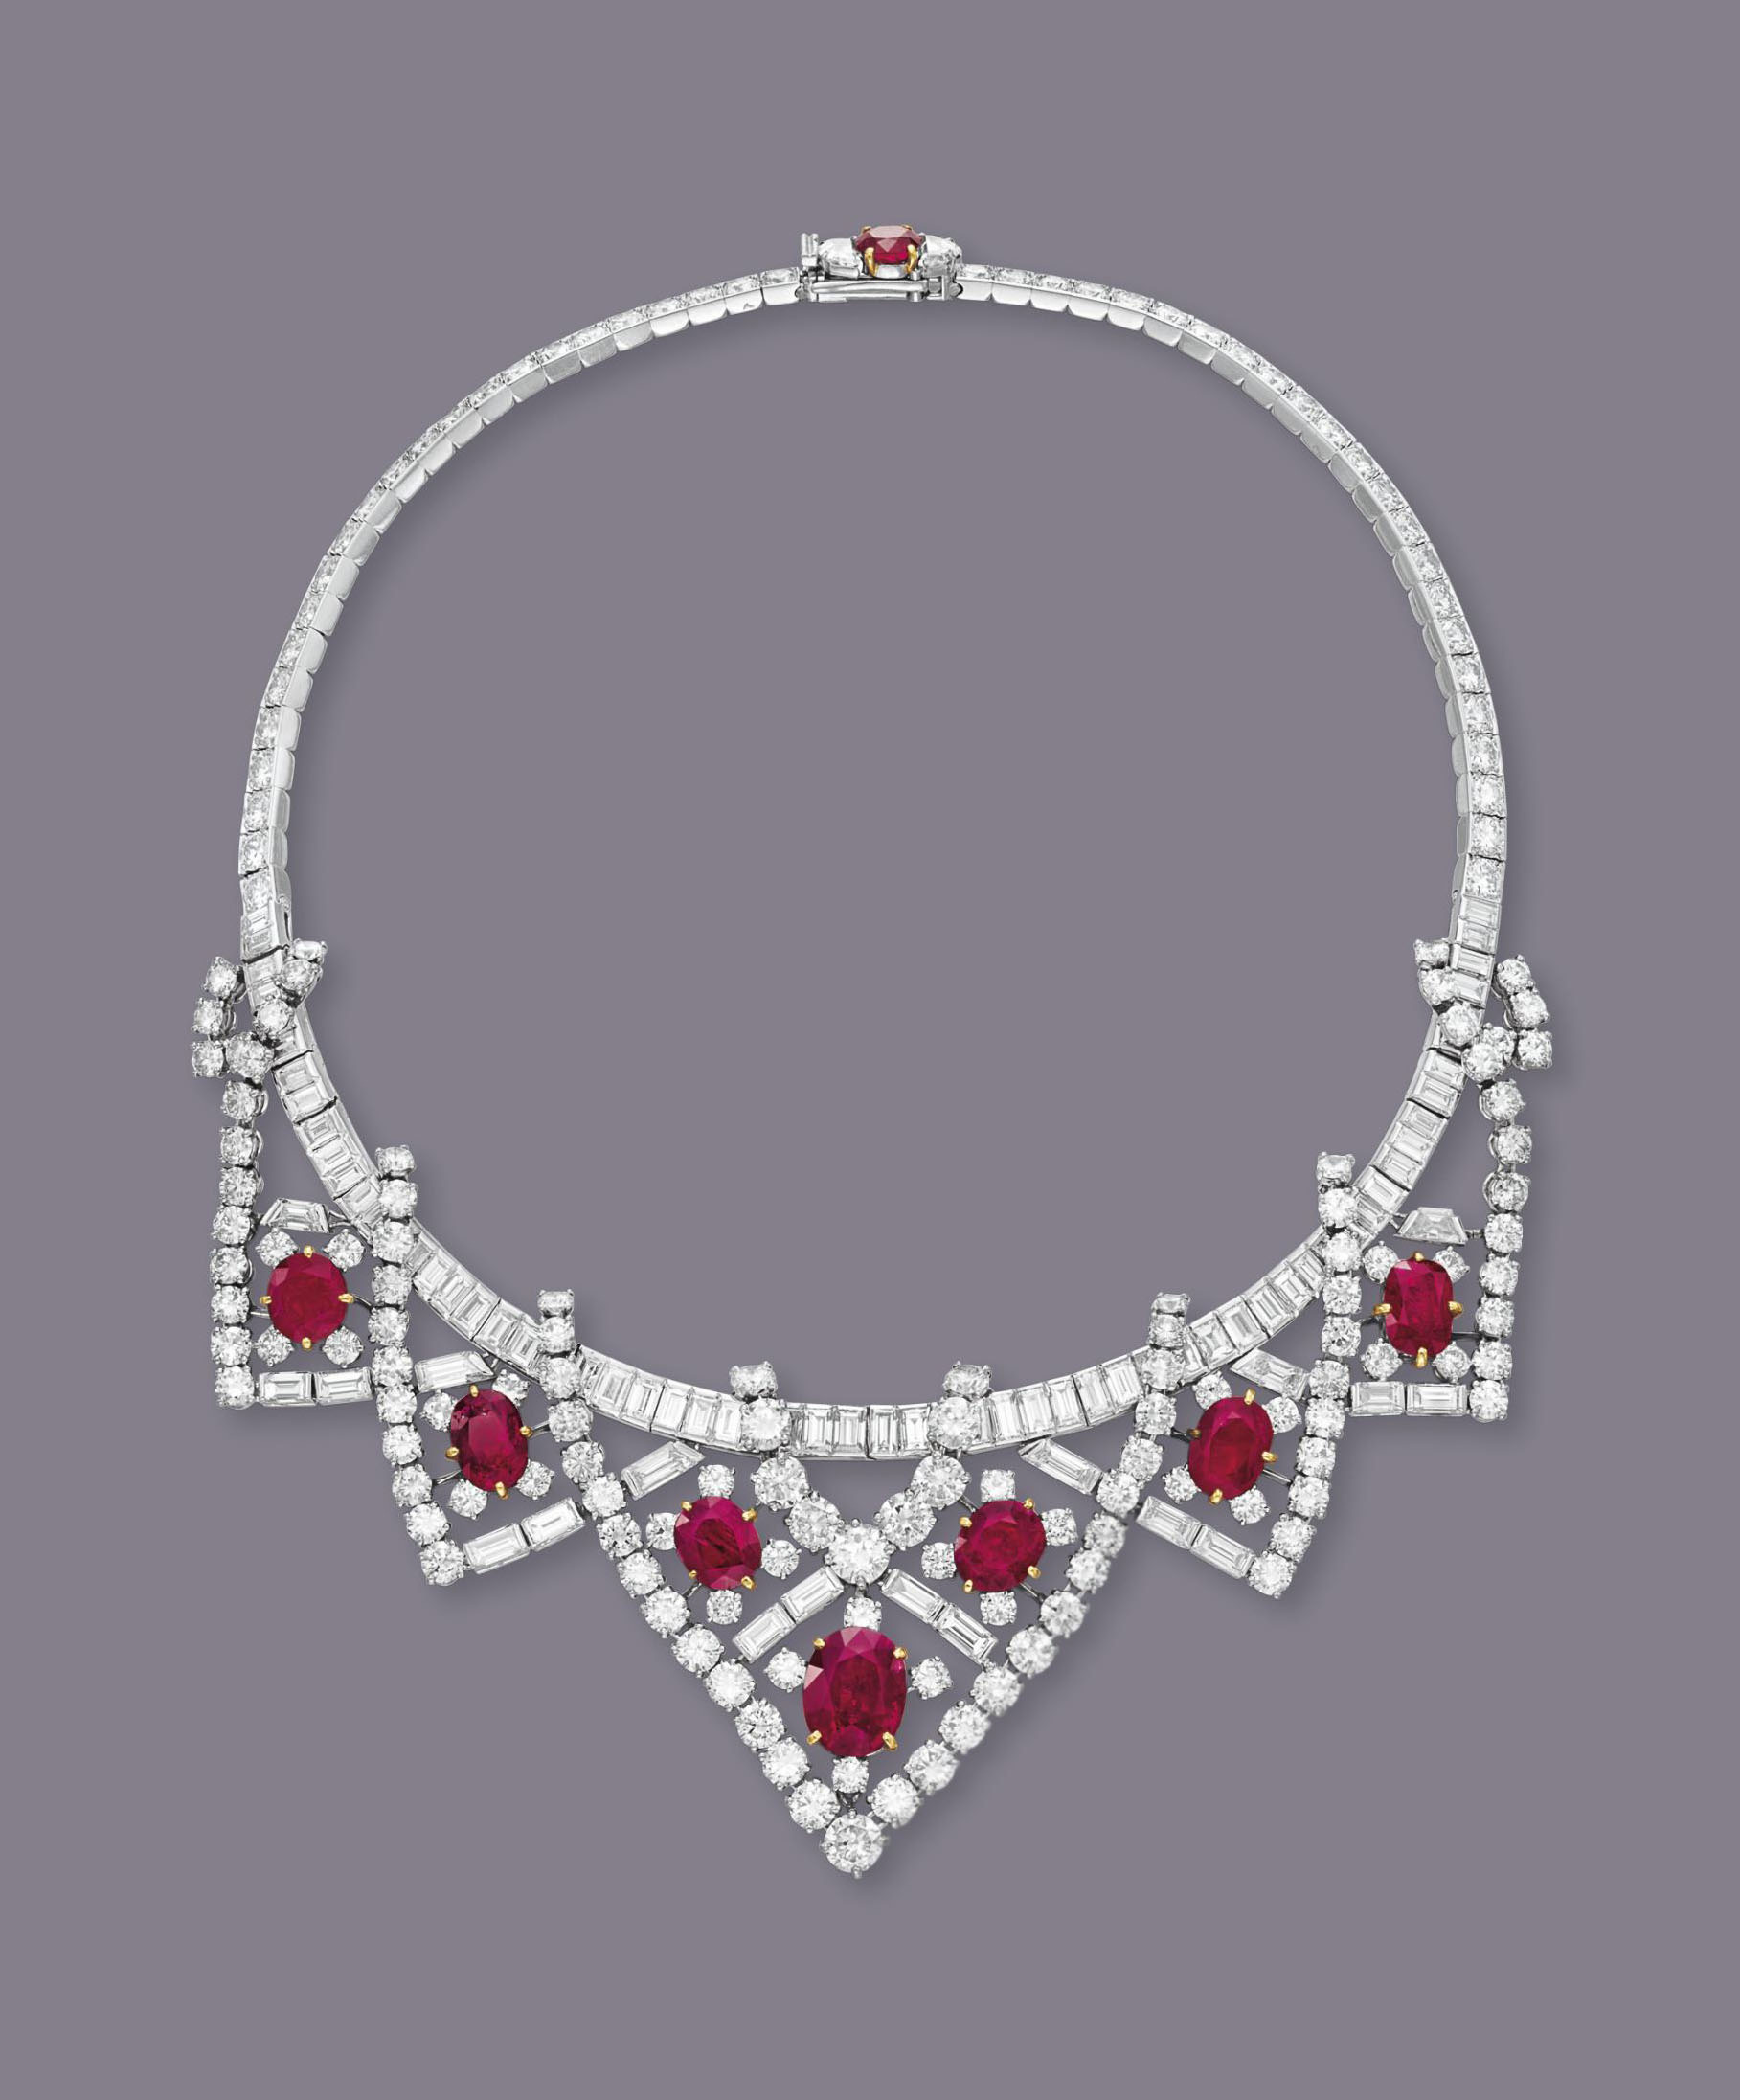 A RUBY AND DIAMOND NECKLACE, BY CARTIER